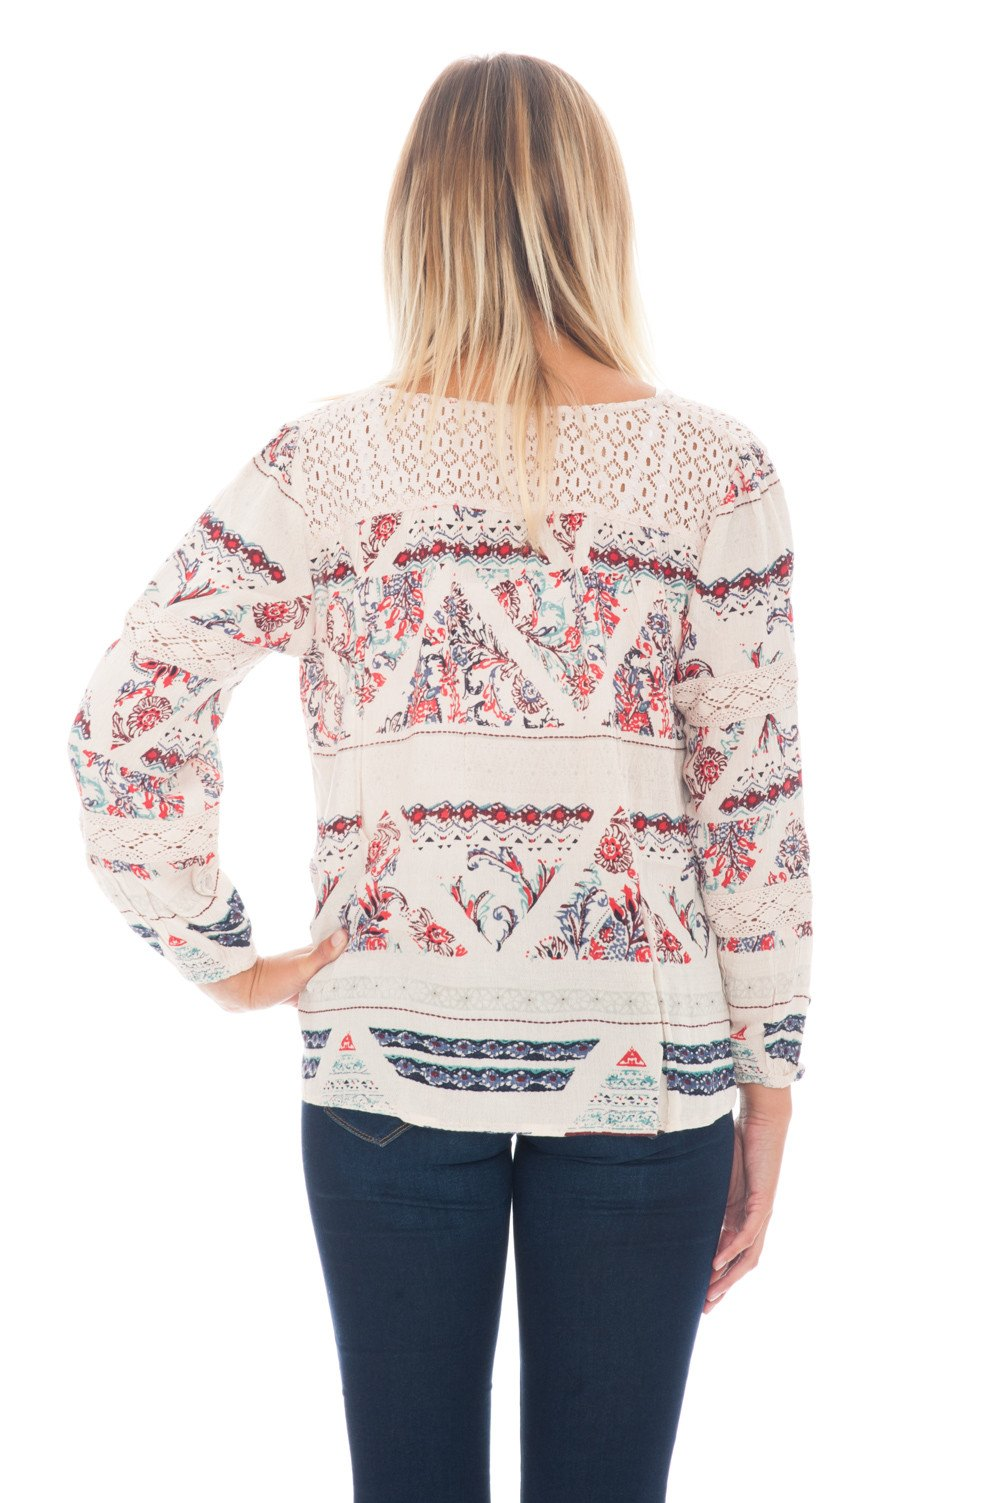 Blouse - Laced Up BOHO - 3